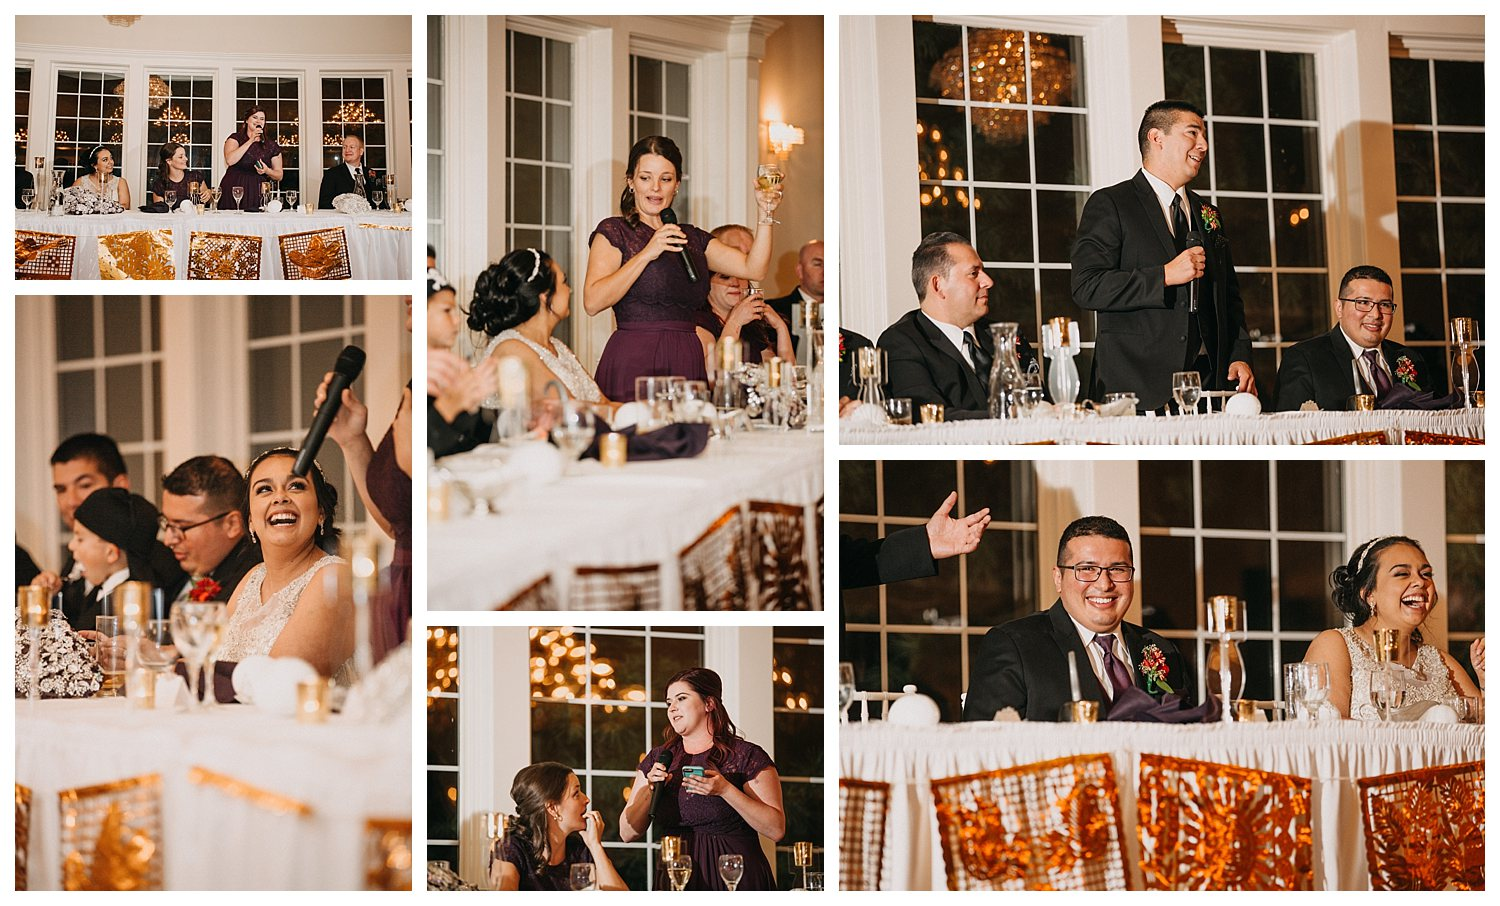 Kelsey_Diane_Photography_Hawthorne_House_Parkville_Kansas_City_Wedding_Veronica_Pat_0074.jpg